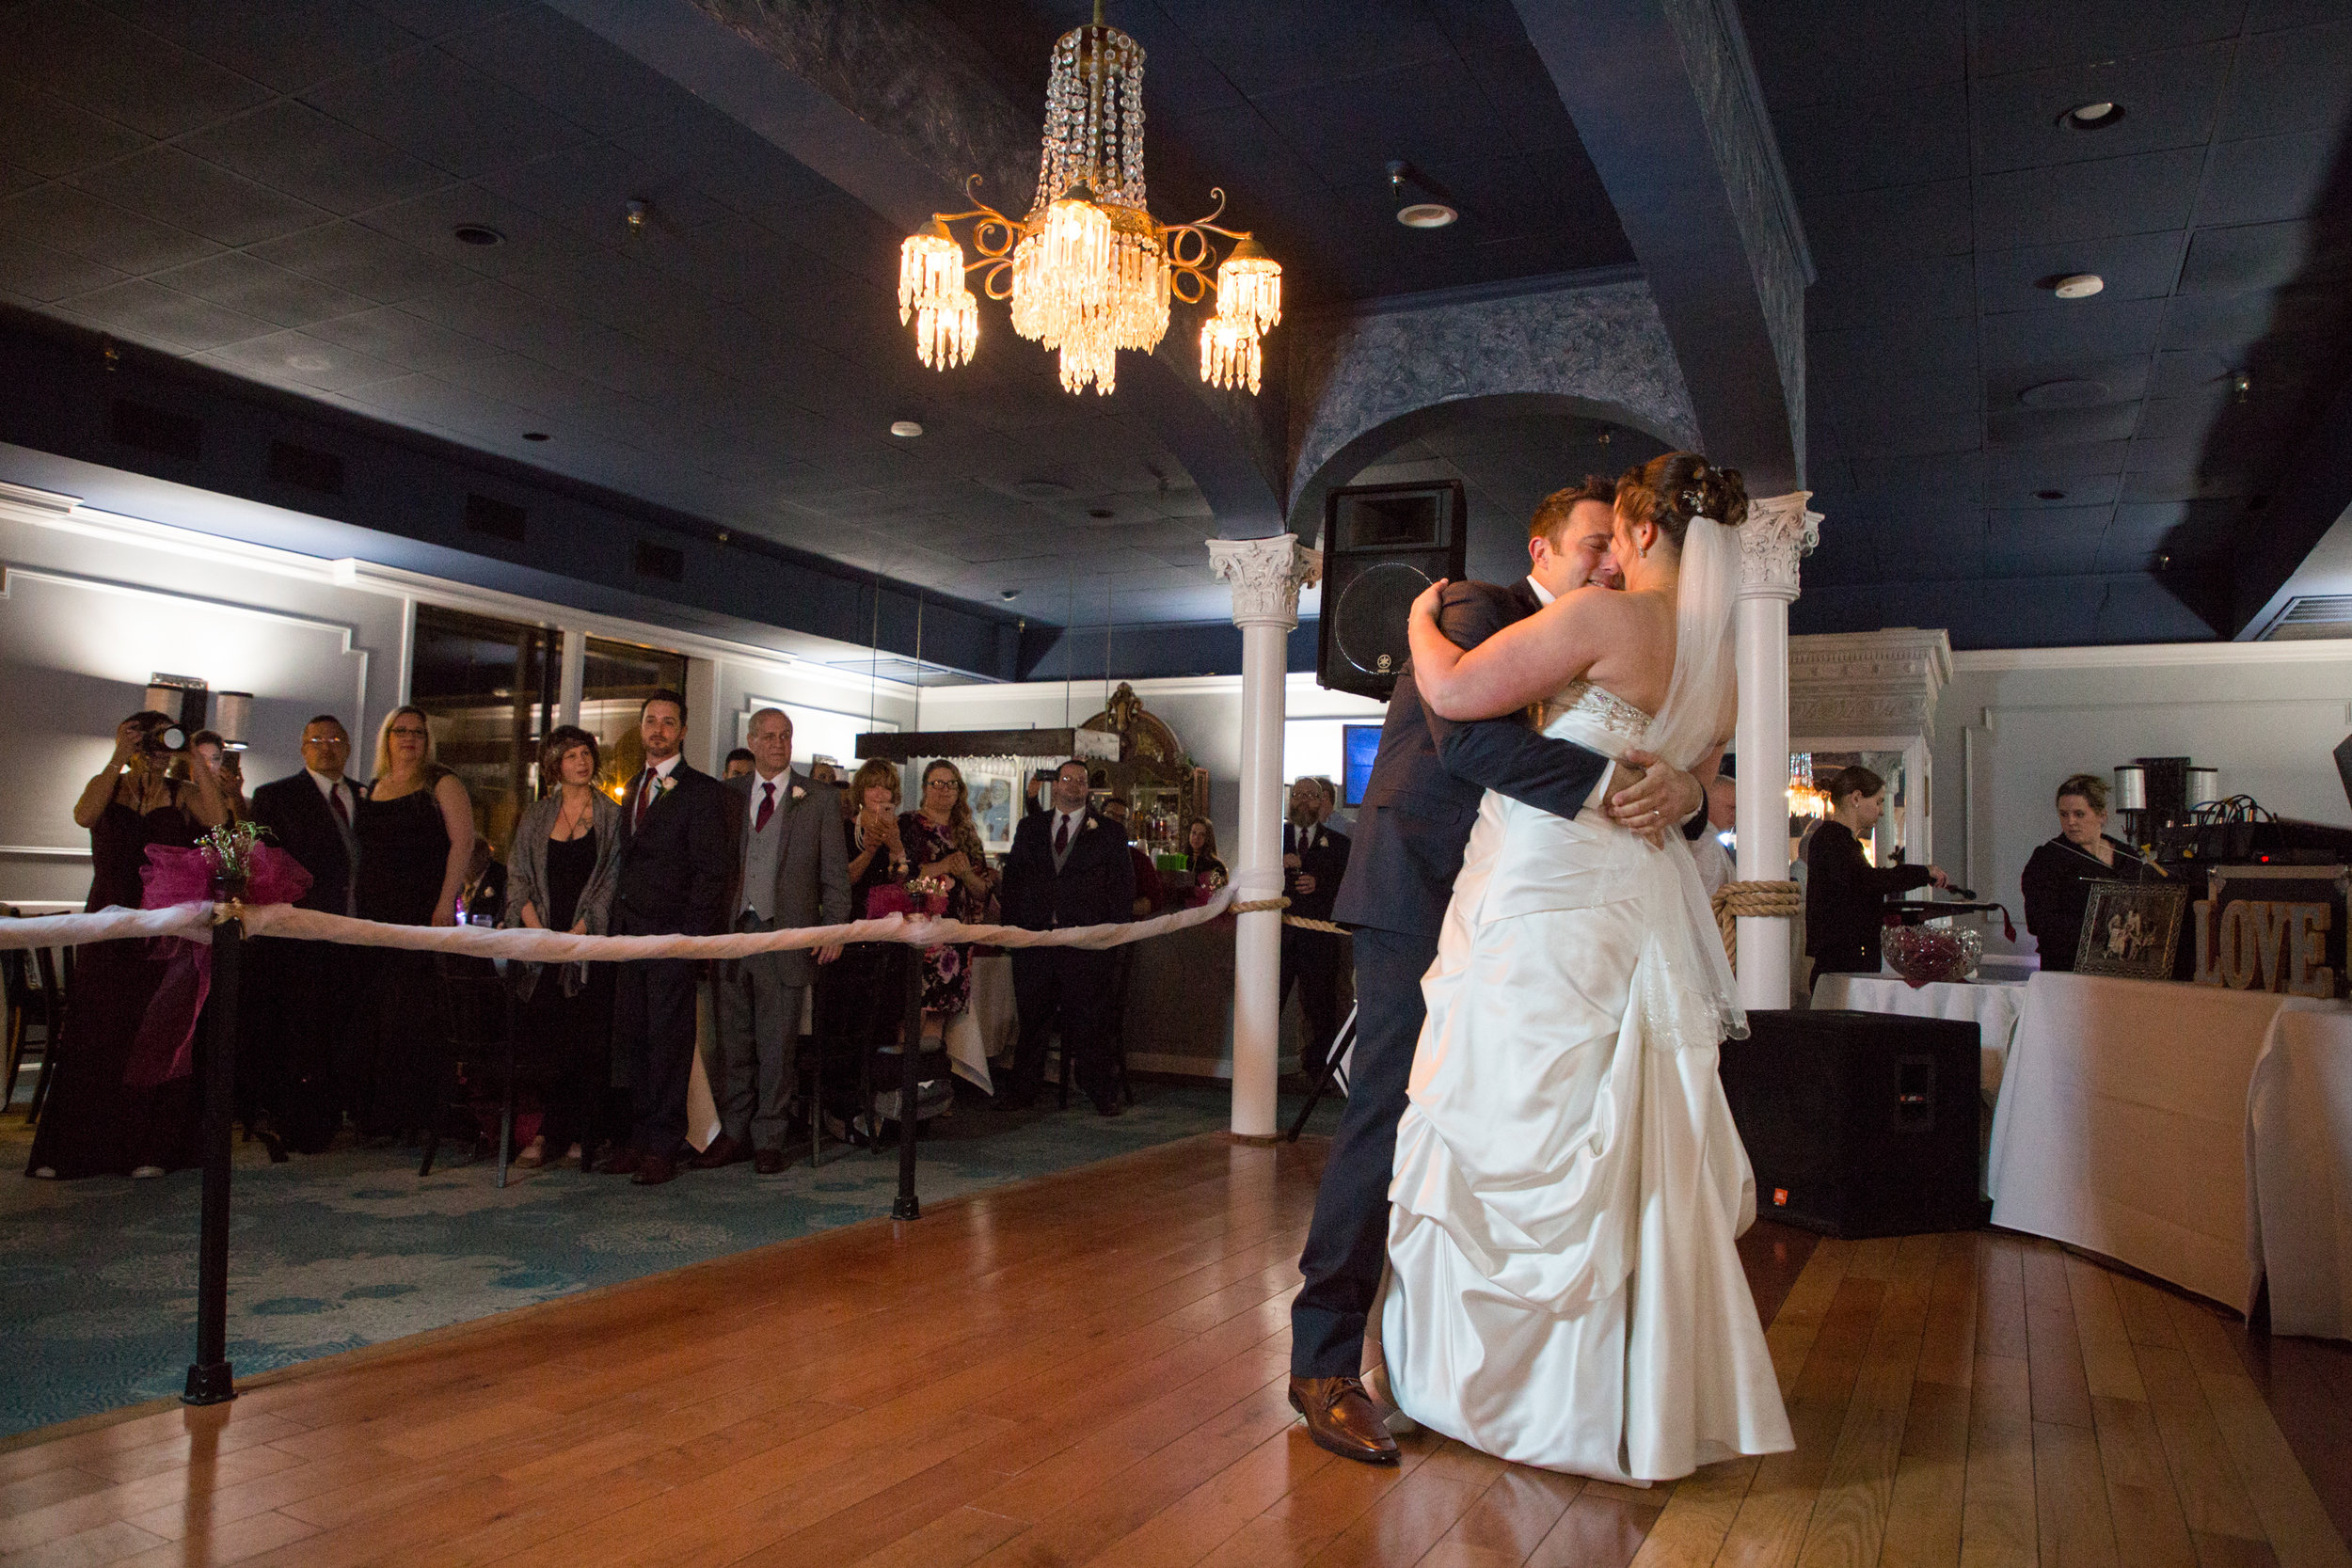 The bride and groom go right into their first dance after their entrance.